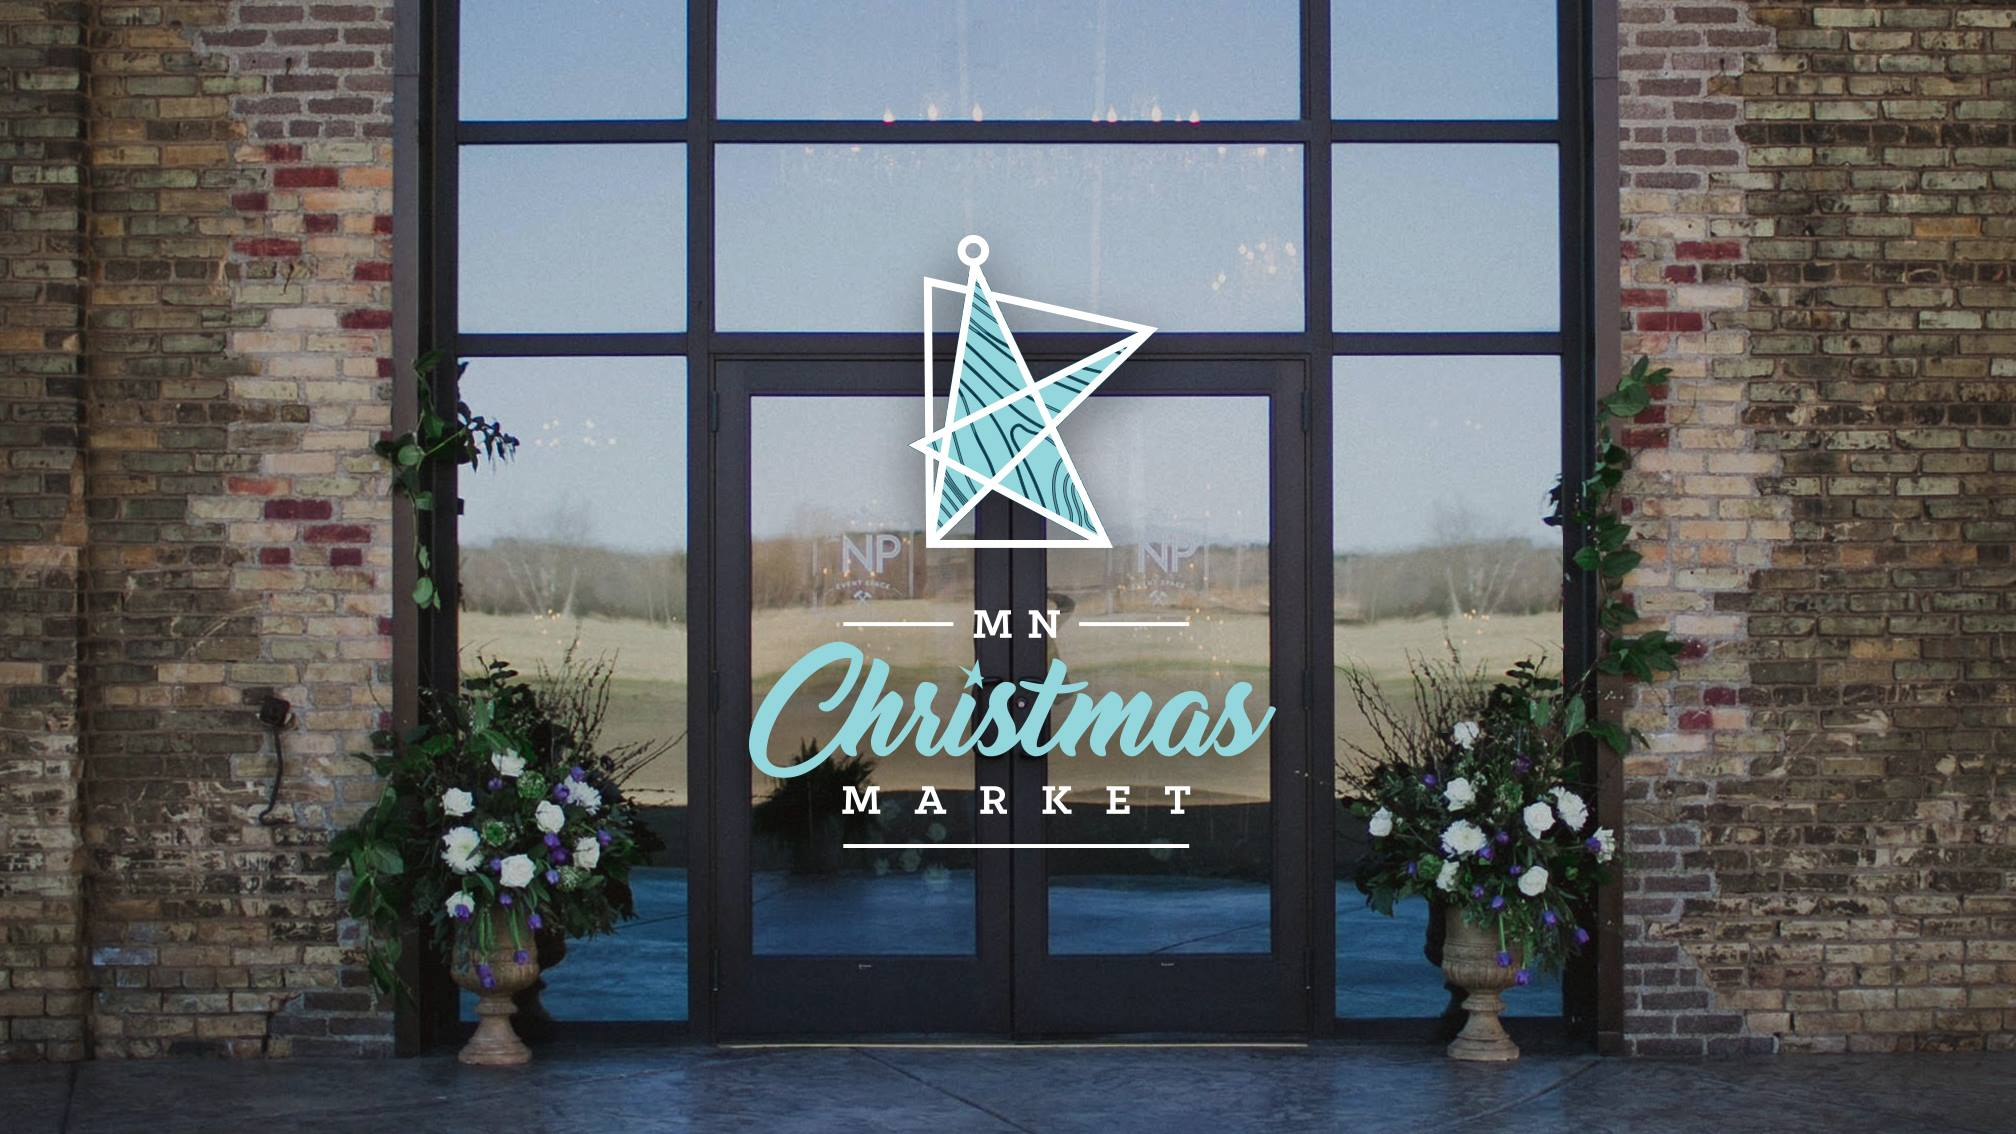 Minnesota Christmas Events.Mn Christmas Market 2019 At The Np Event Space Brainerd Mn